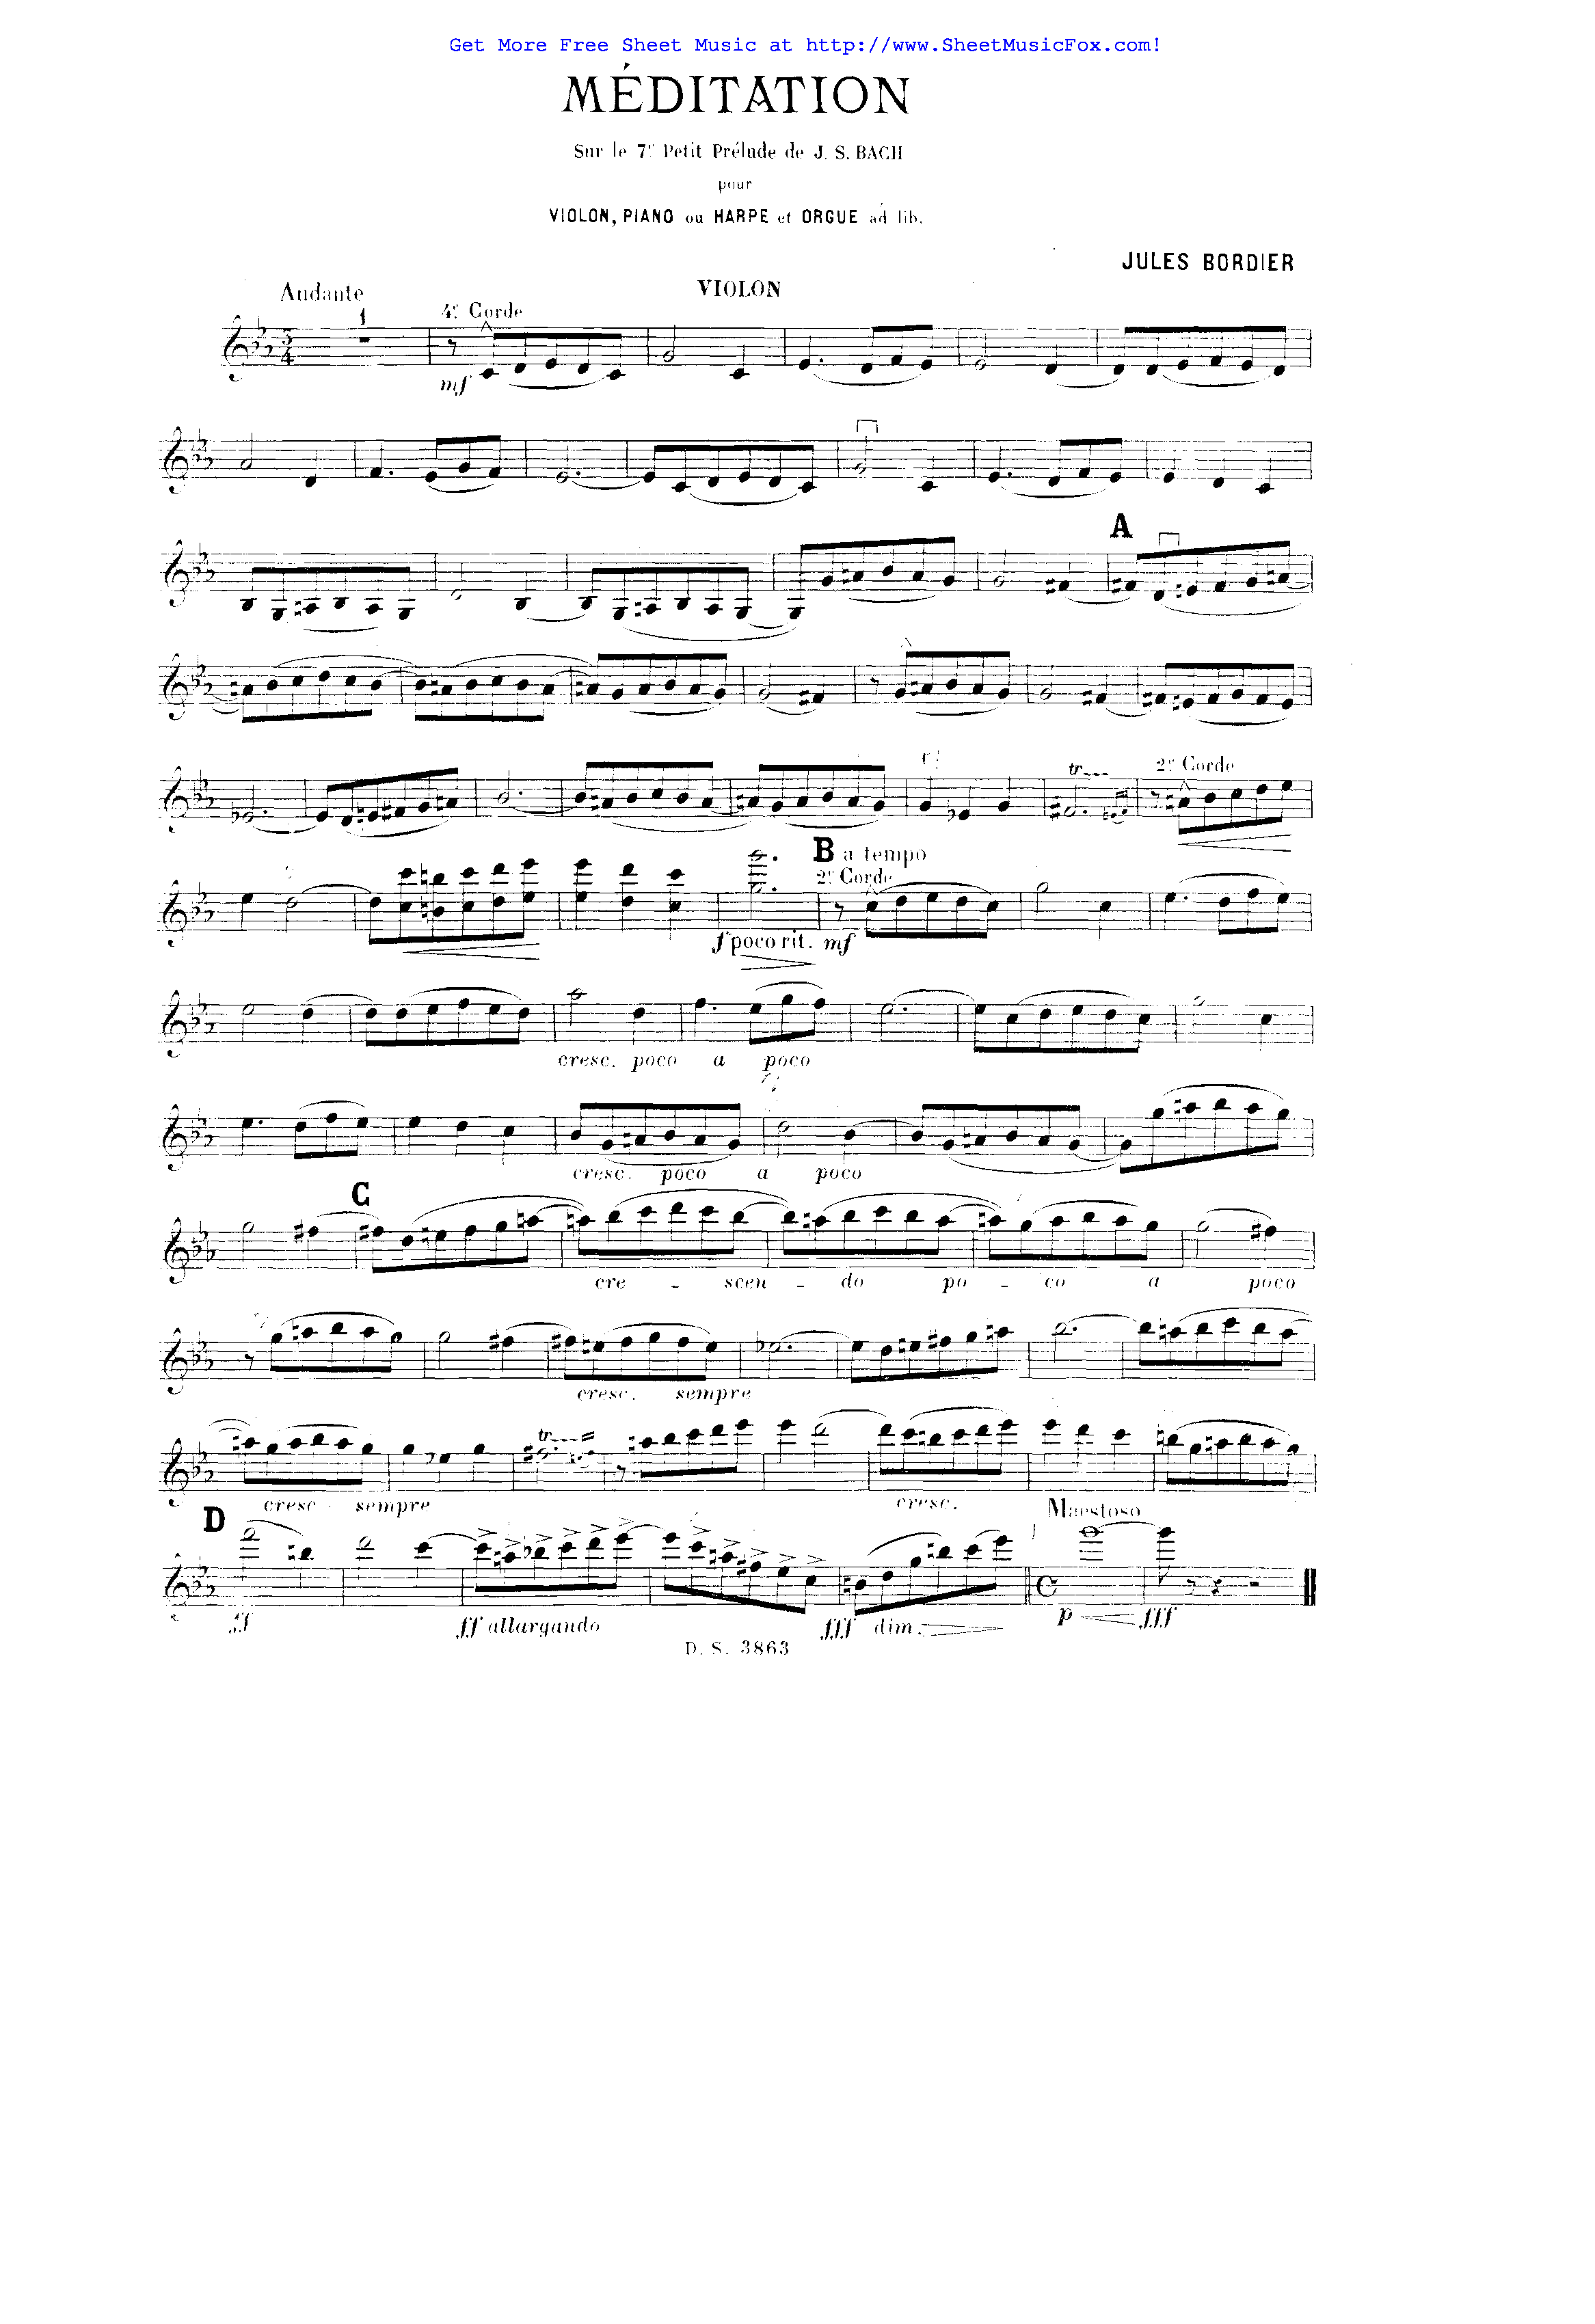 Free sheet music for Méditation (Bordier, Jules) by Jules